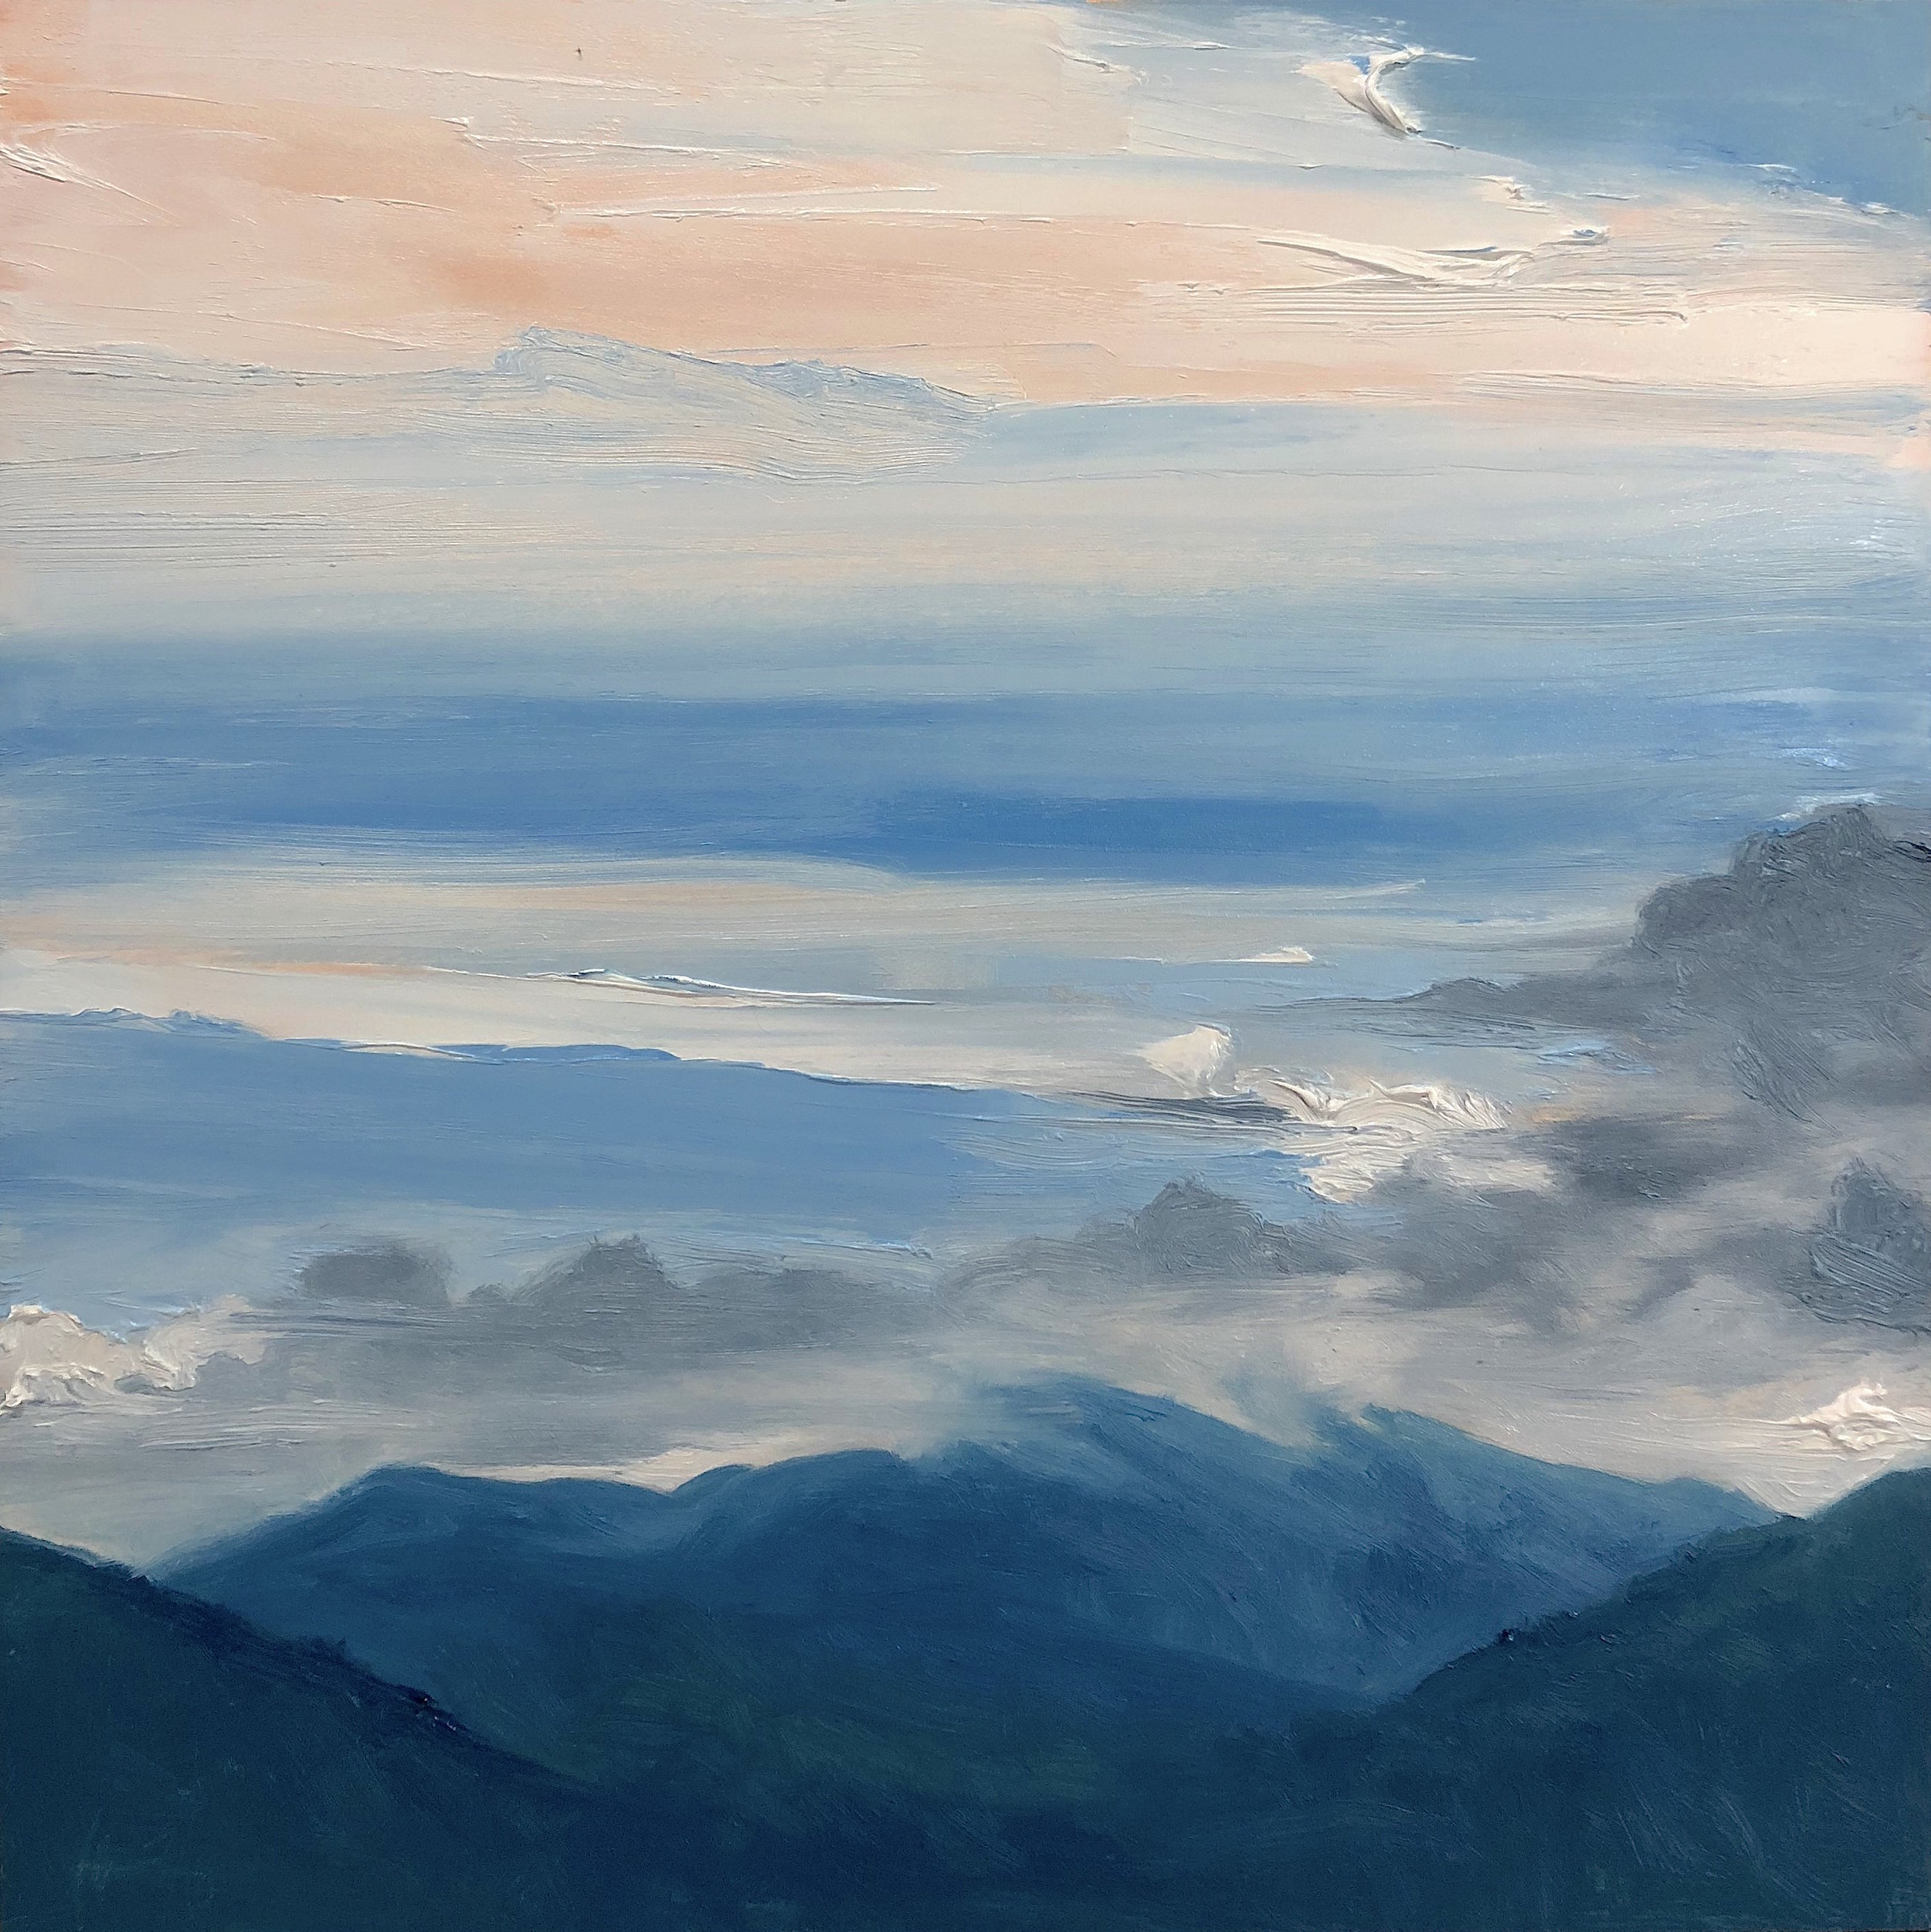 Mt. Washington 7-12-2018, from the 36 Views of Mt. Washington series, oil on board, 12 by 12 inches, 2018, $1000